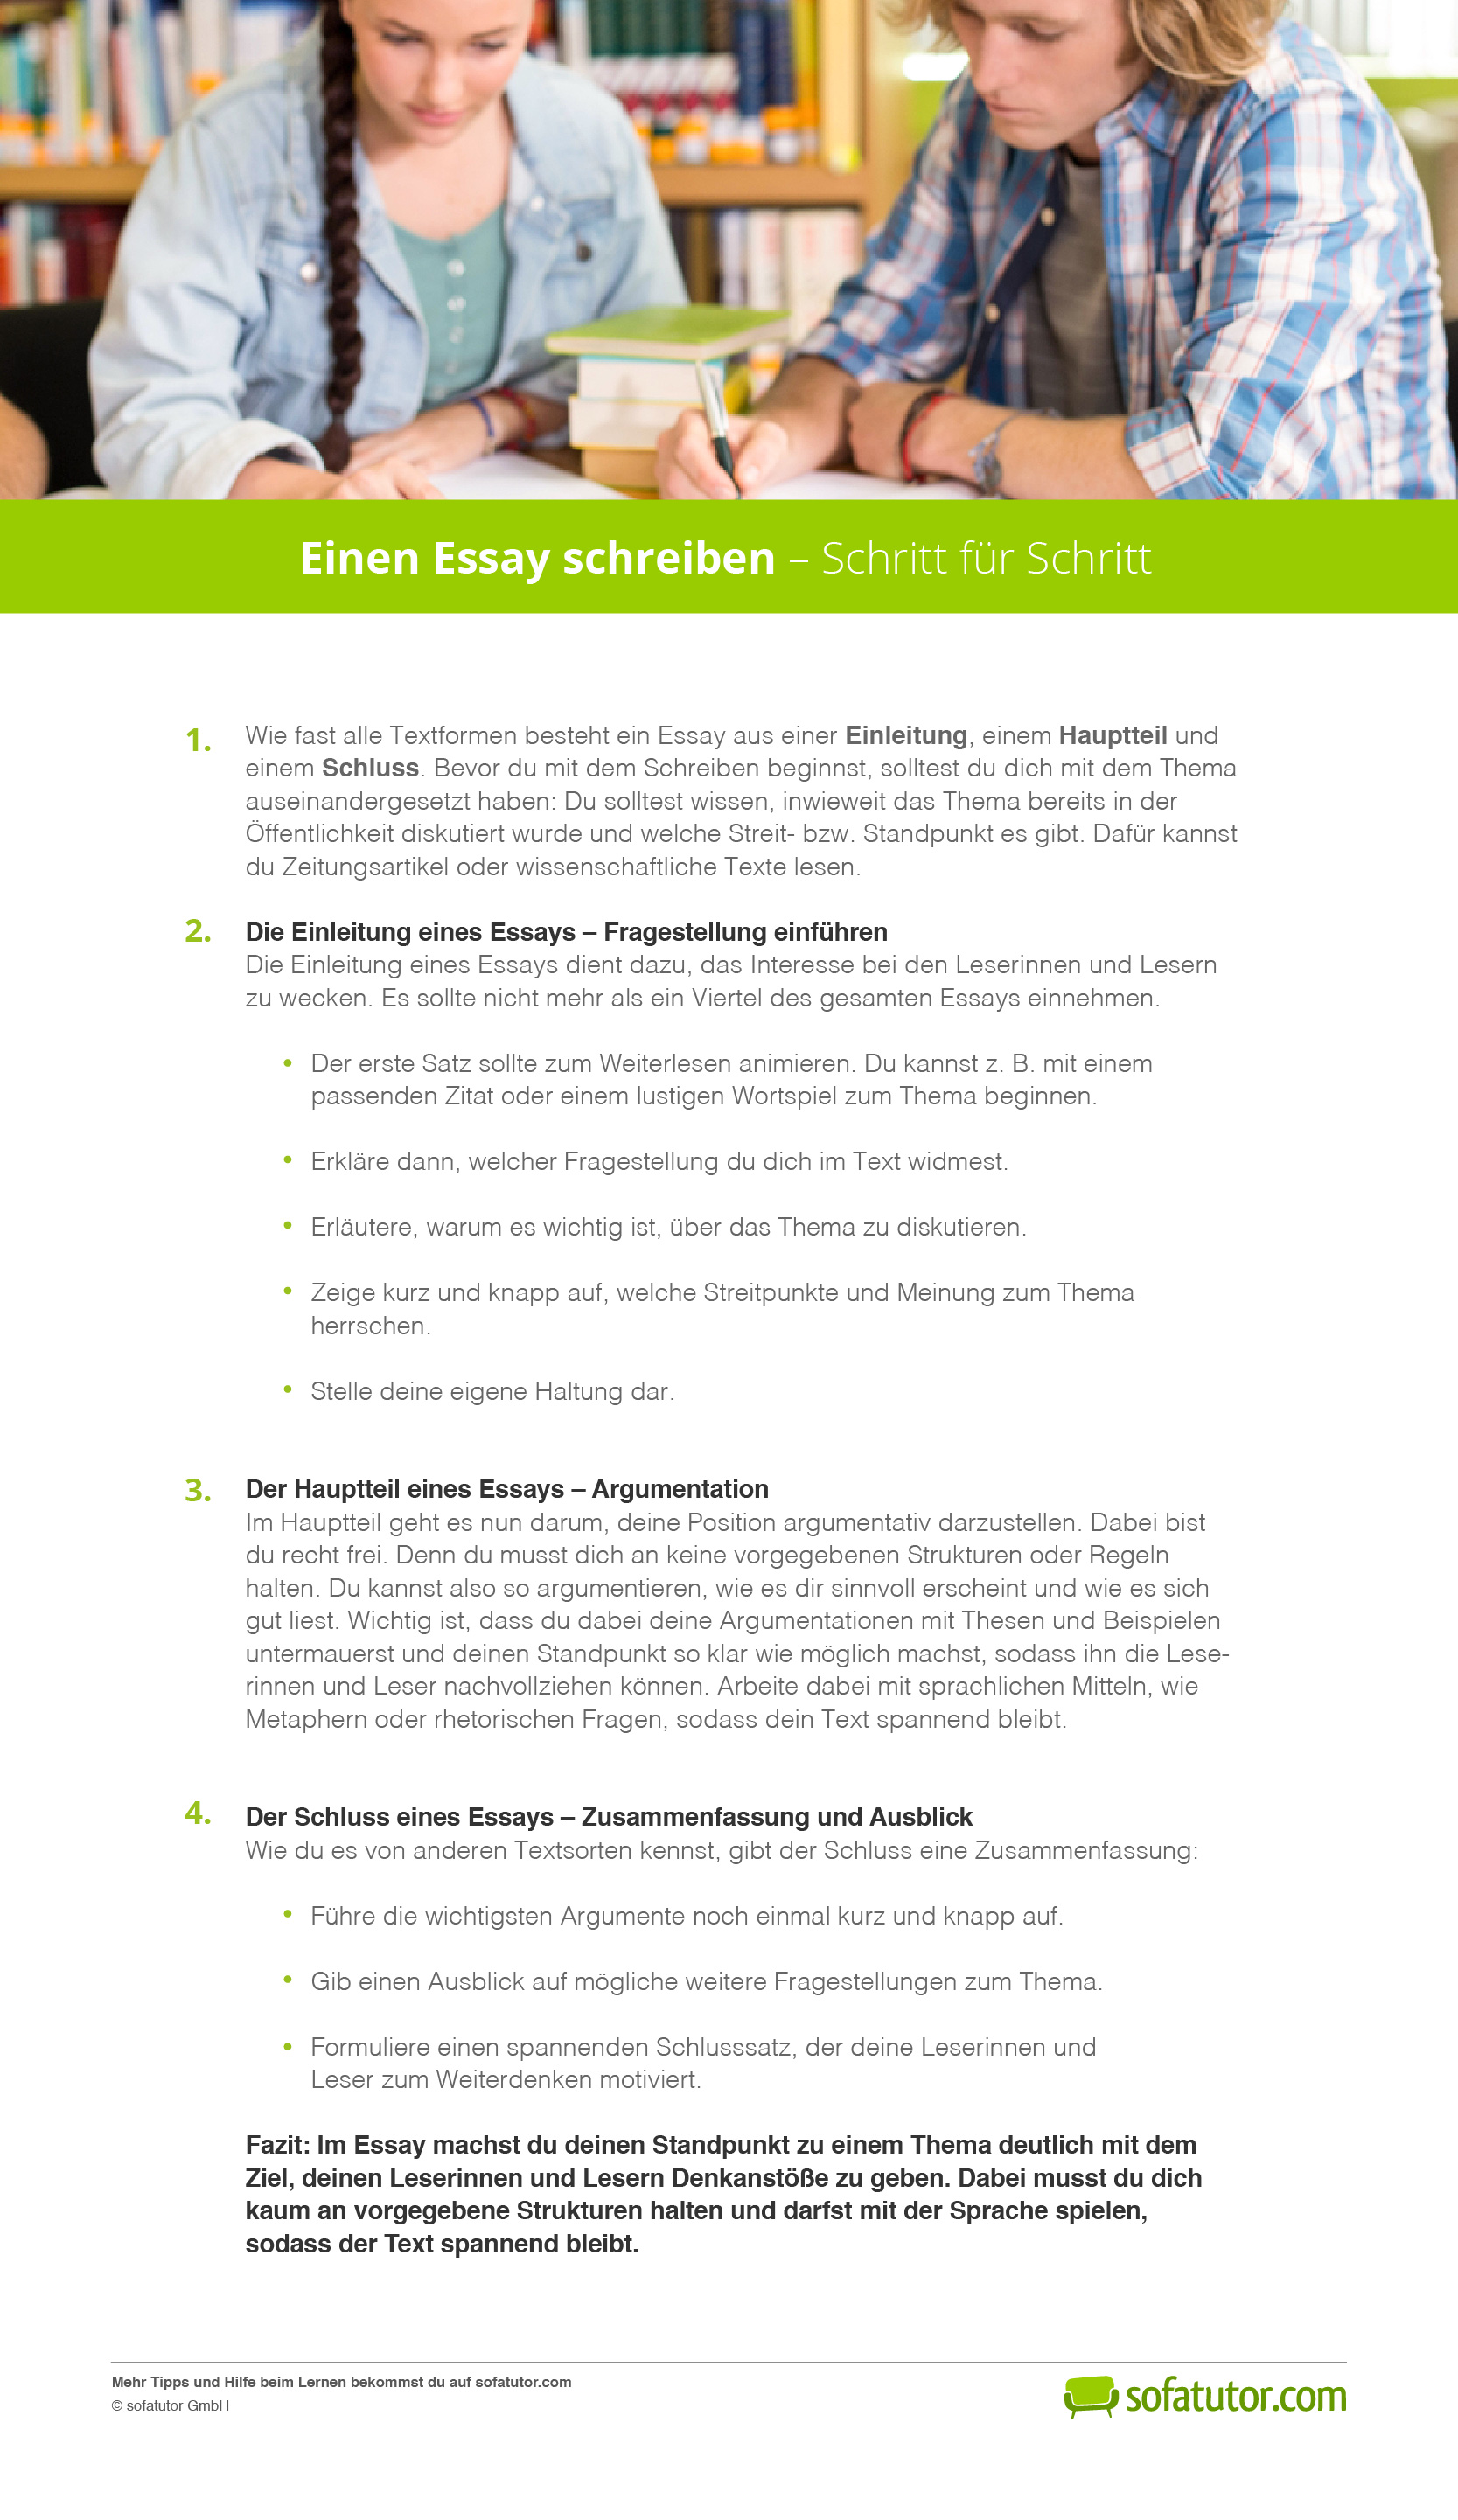 Cause and effect essay thesis generator image 1